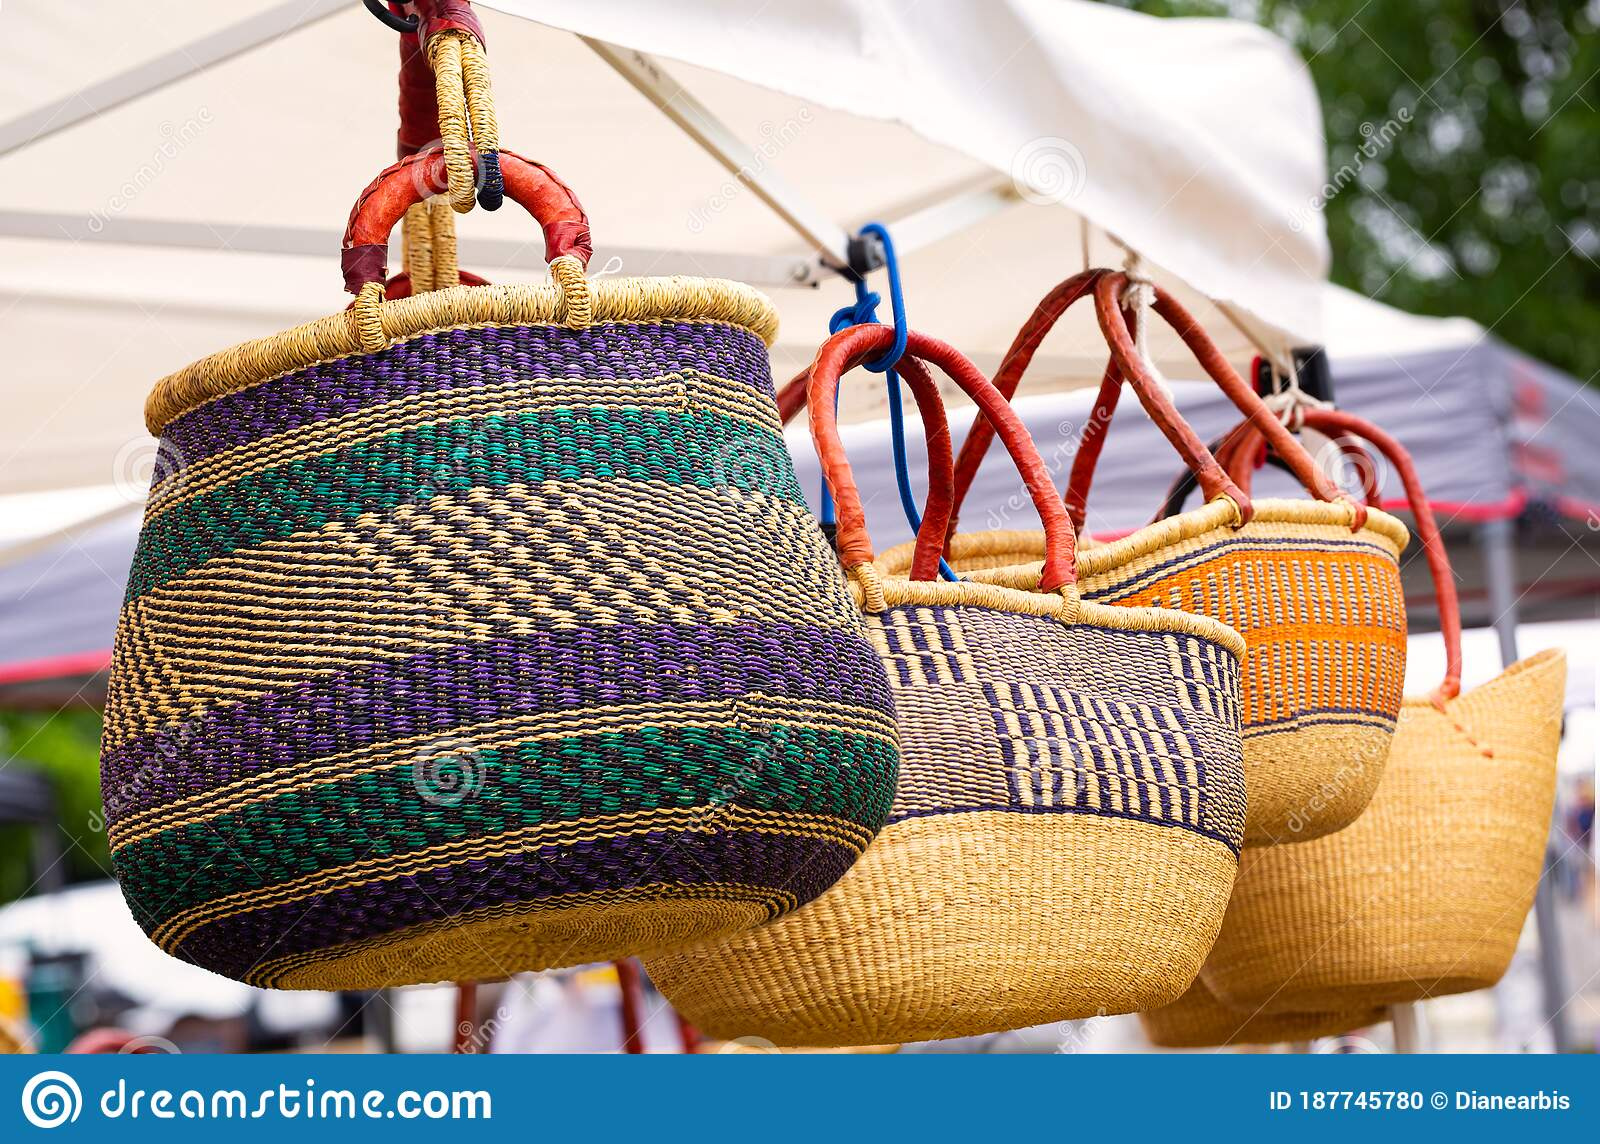 562 African Baskets Photos Free Royalty Free Stock Photos From Dreamstime